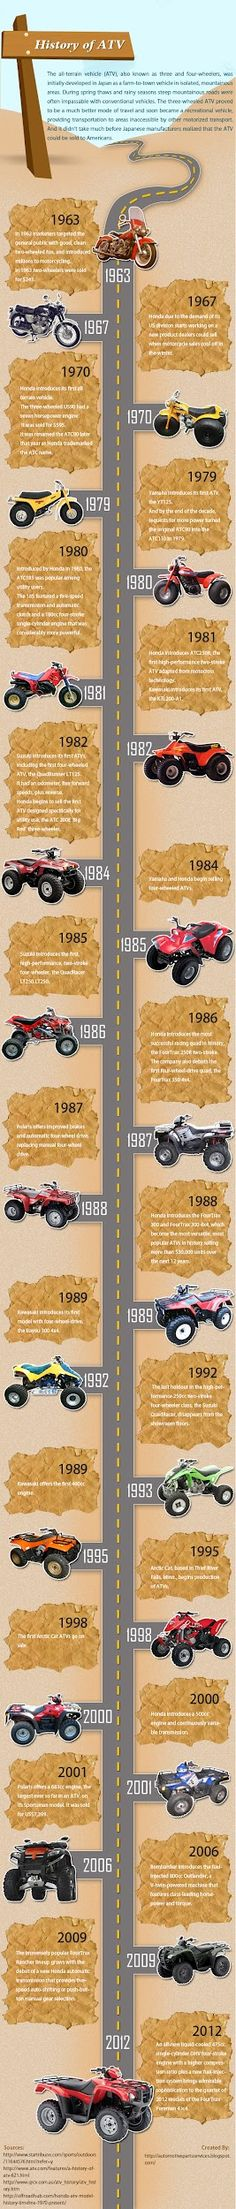 P1340205g 34562592 atv atc utv pinterest atv i do have a problem with this chart they clearly dont like yamaha fandeluxe Gallery